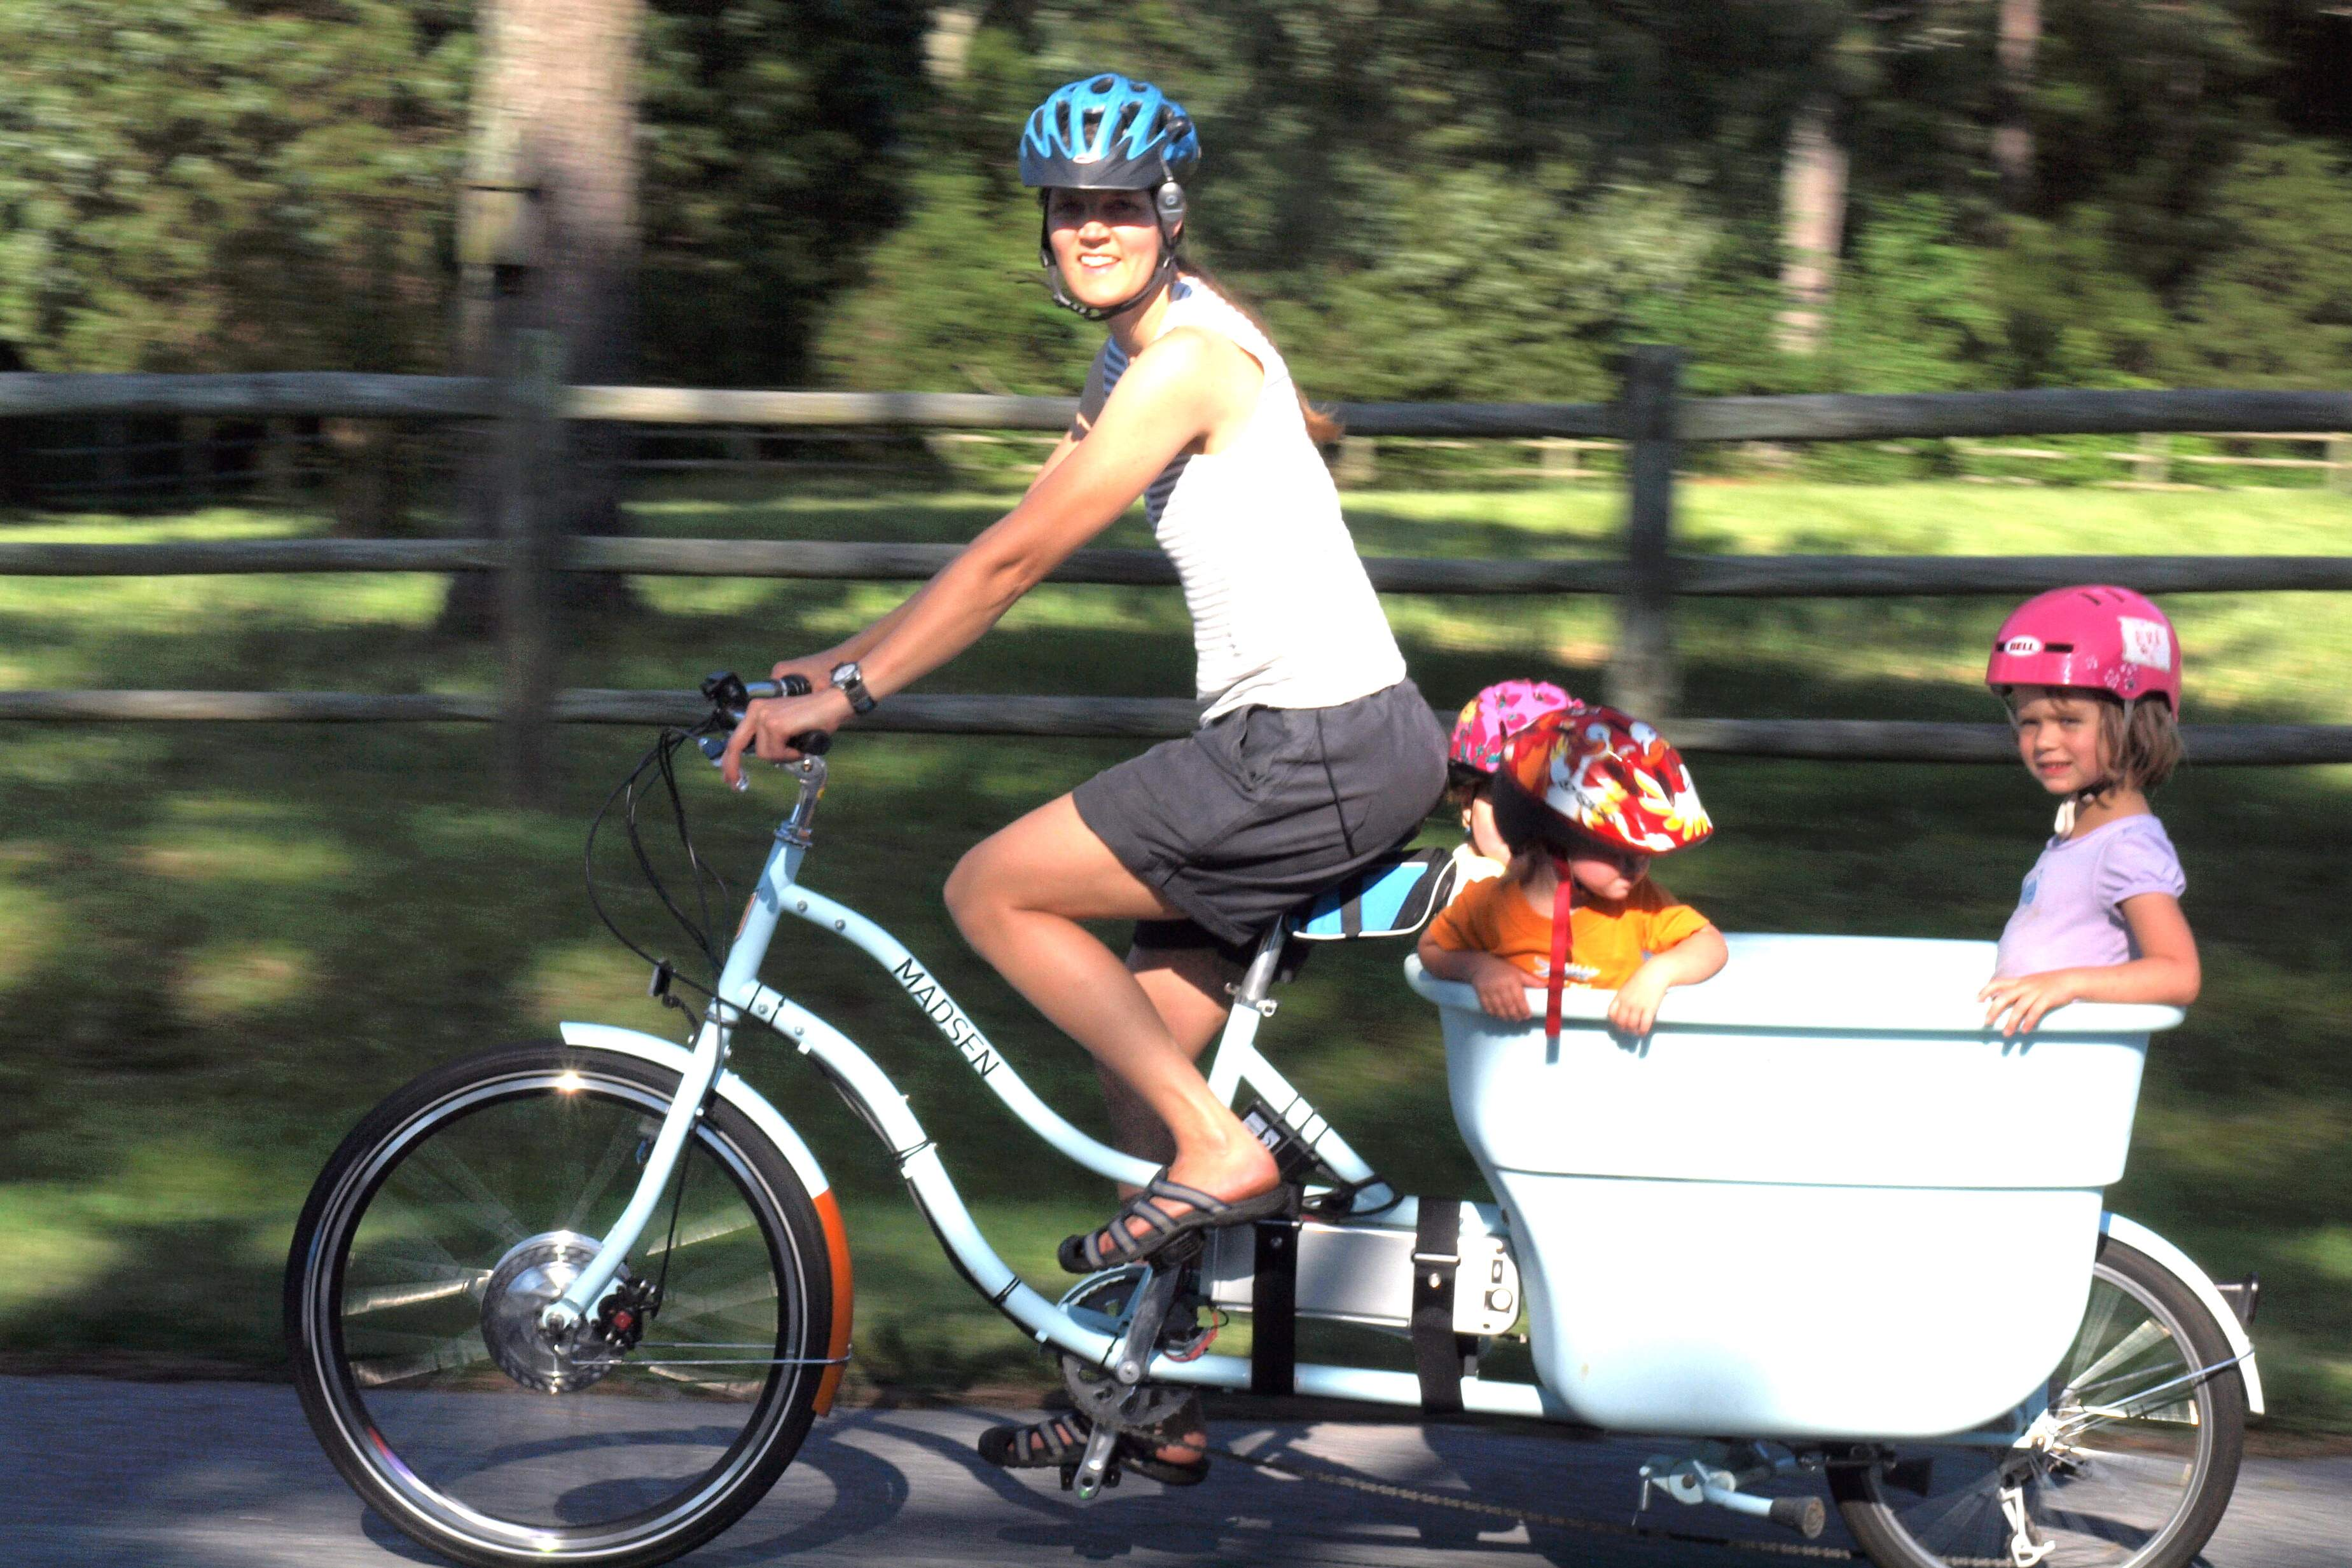 Child Bike Seat, Bike Trailer, or Cargo Bike? Exploring the options A great article exploring the options for carrying kids by bike.